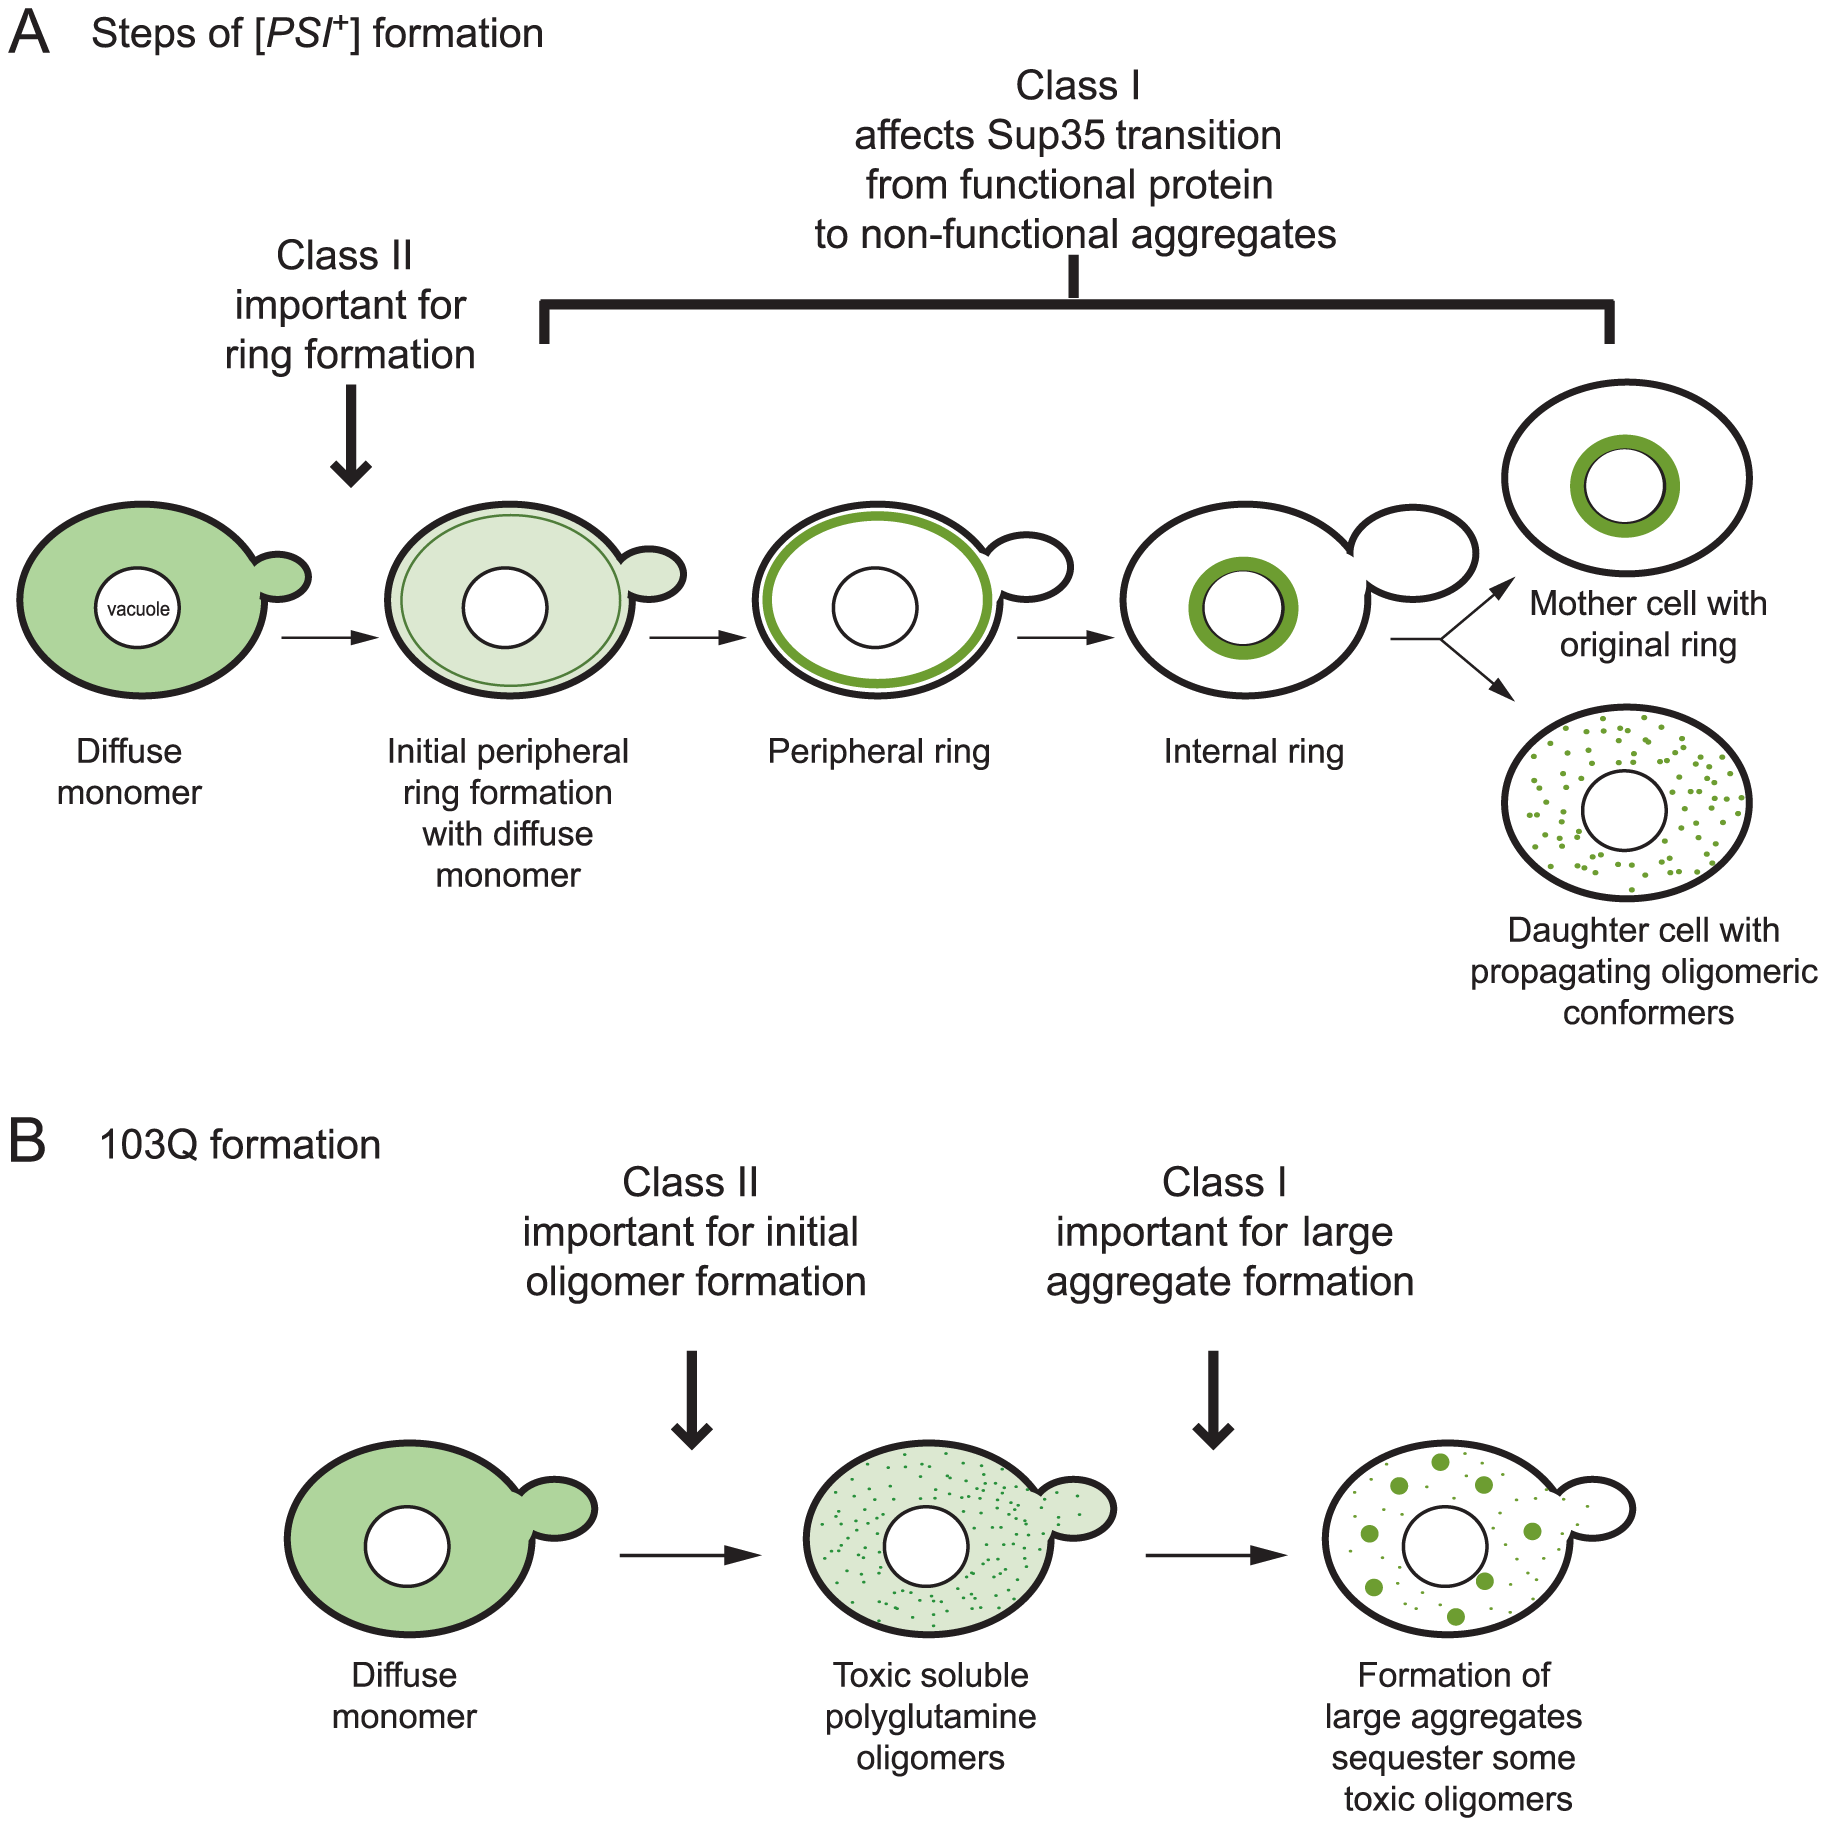 Proposed effects of class I and II genes on the multistep pathways of <i>de novo</i> prion and polyglutamine aggregate formation.